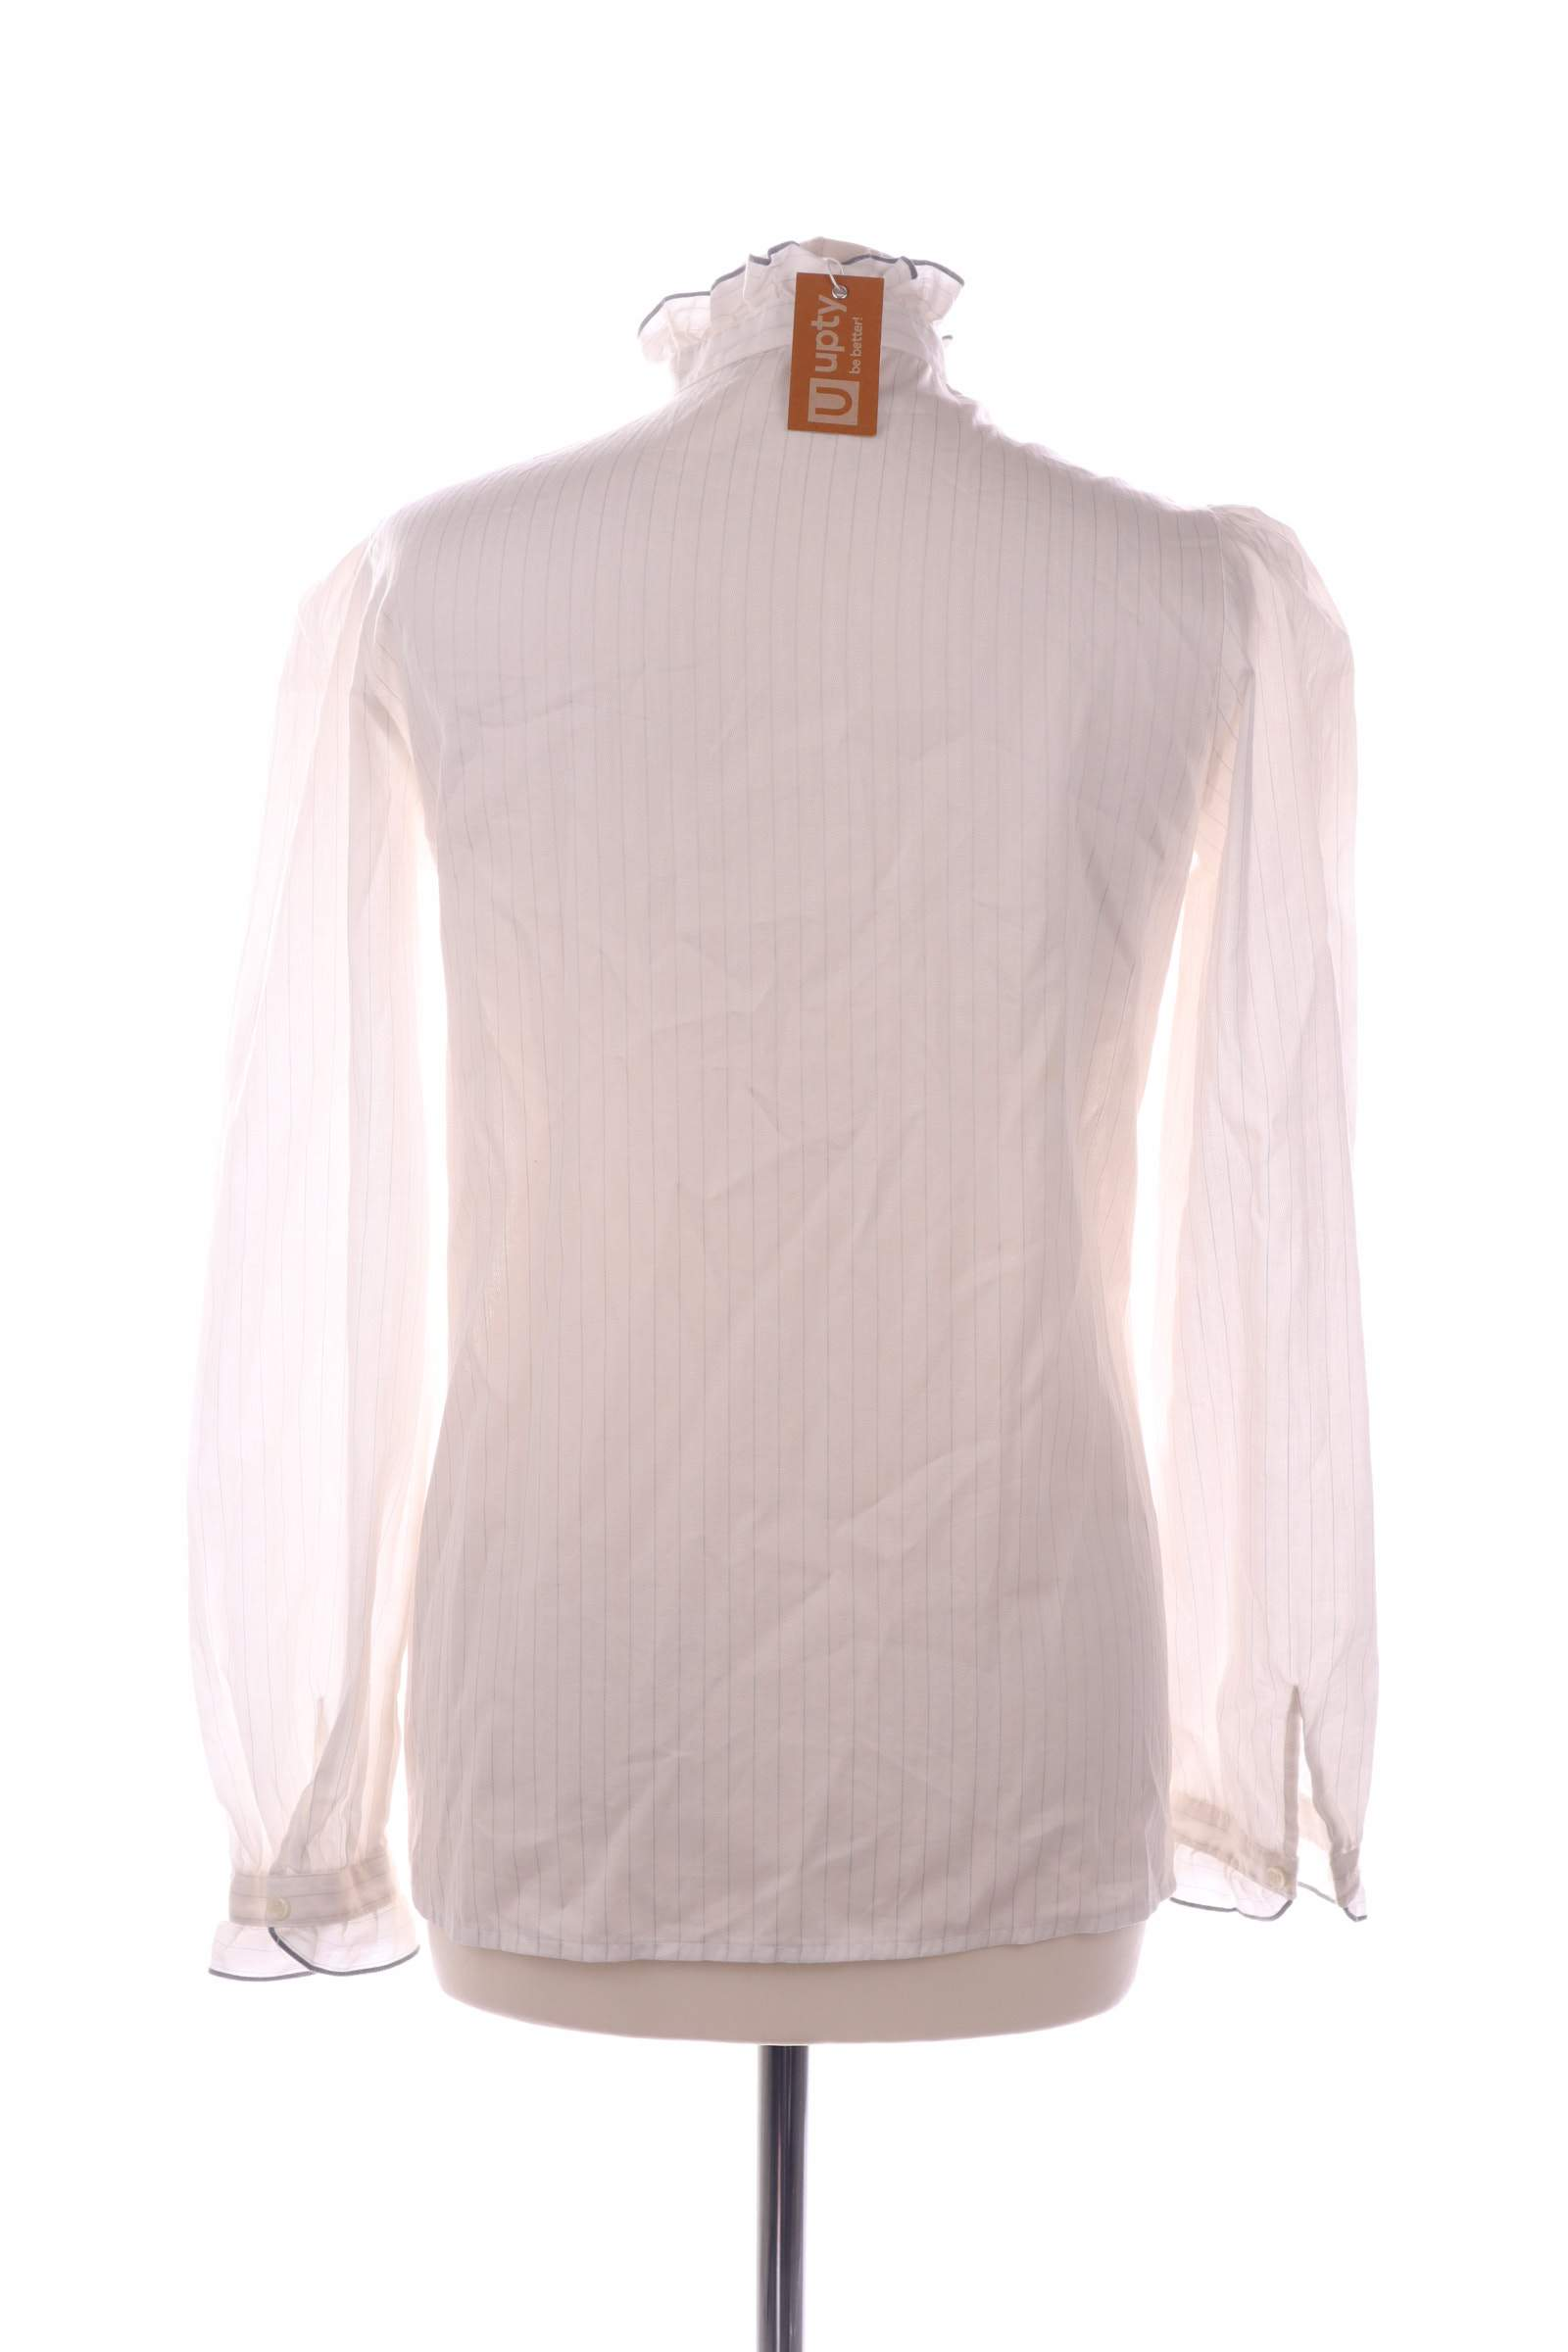 Einhorn White Top